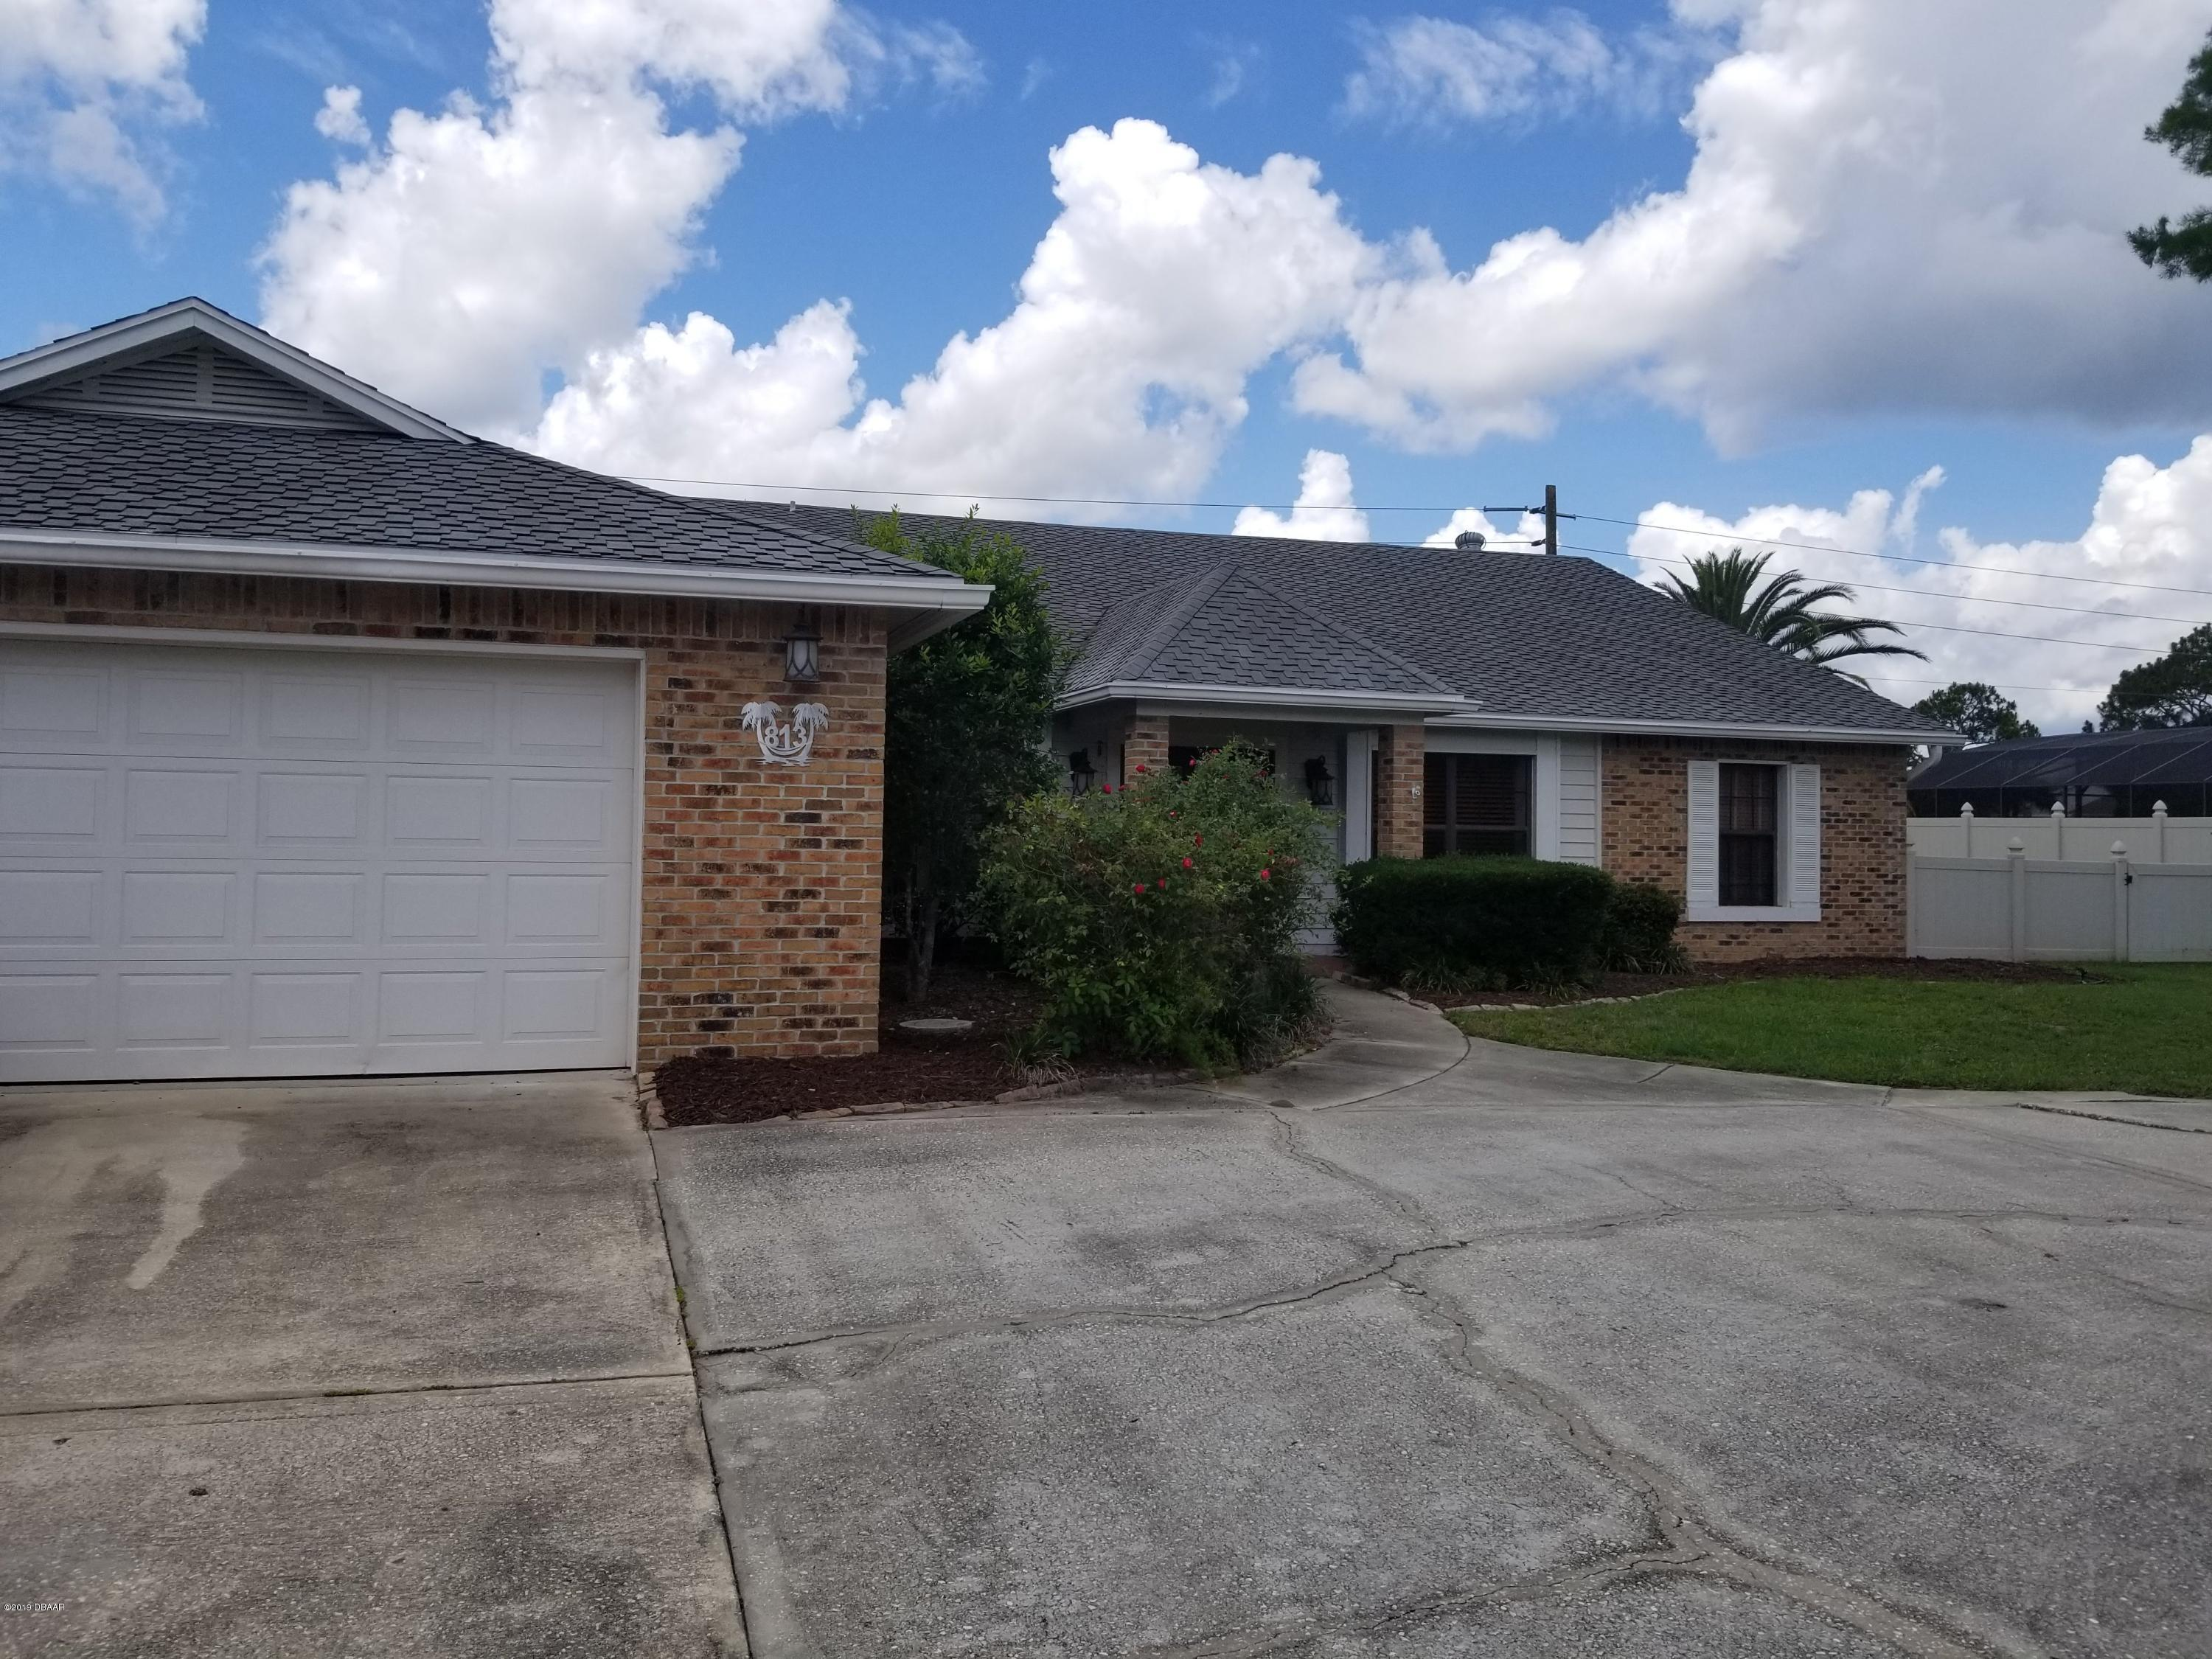 Photo of 813 Pelican Bay Drive, Daytona Beach, FL 32119